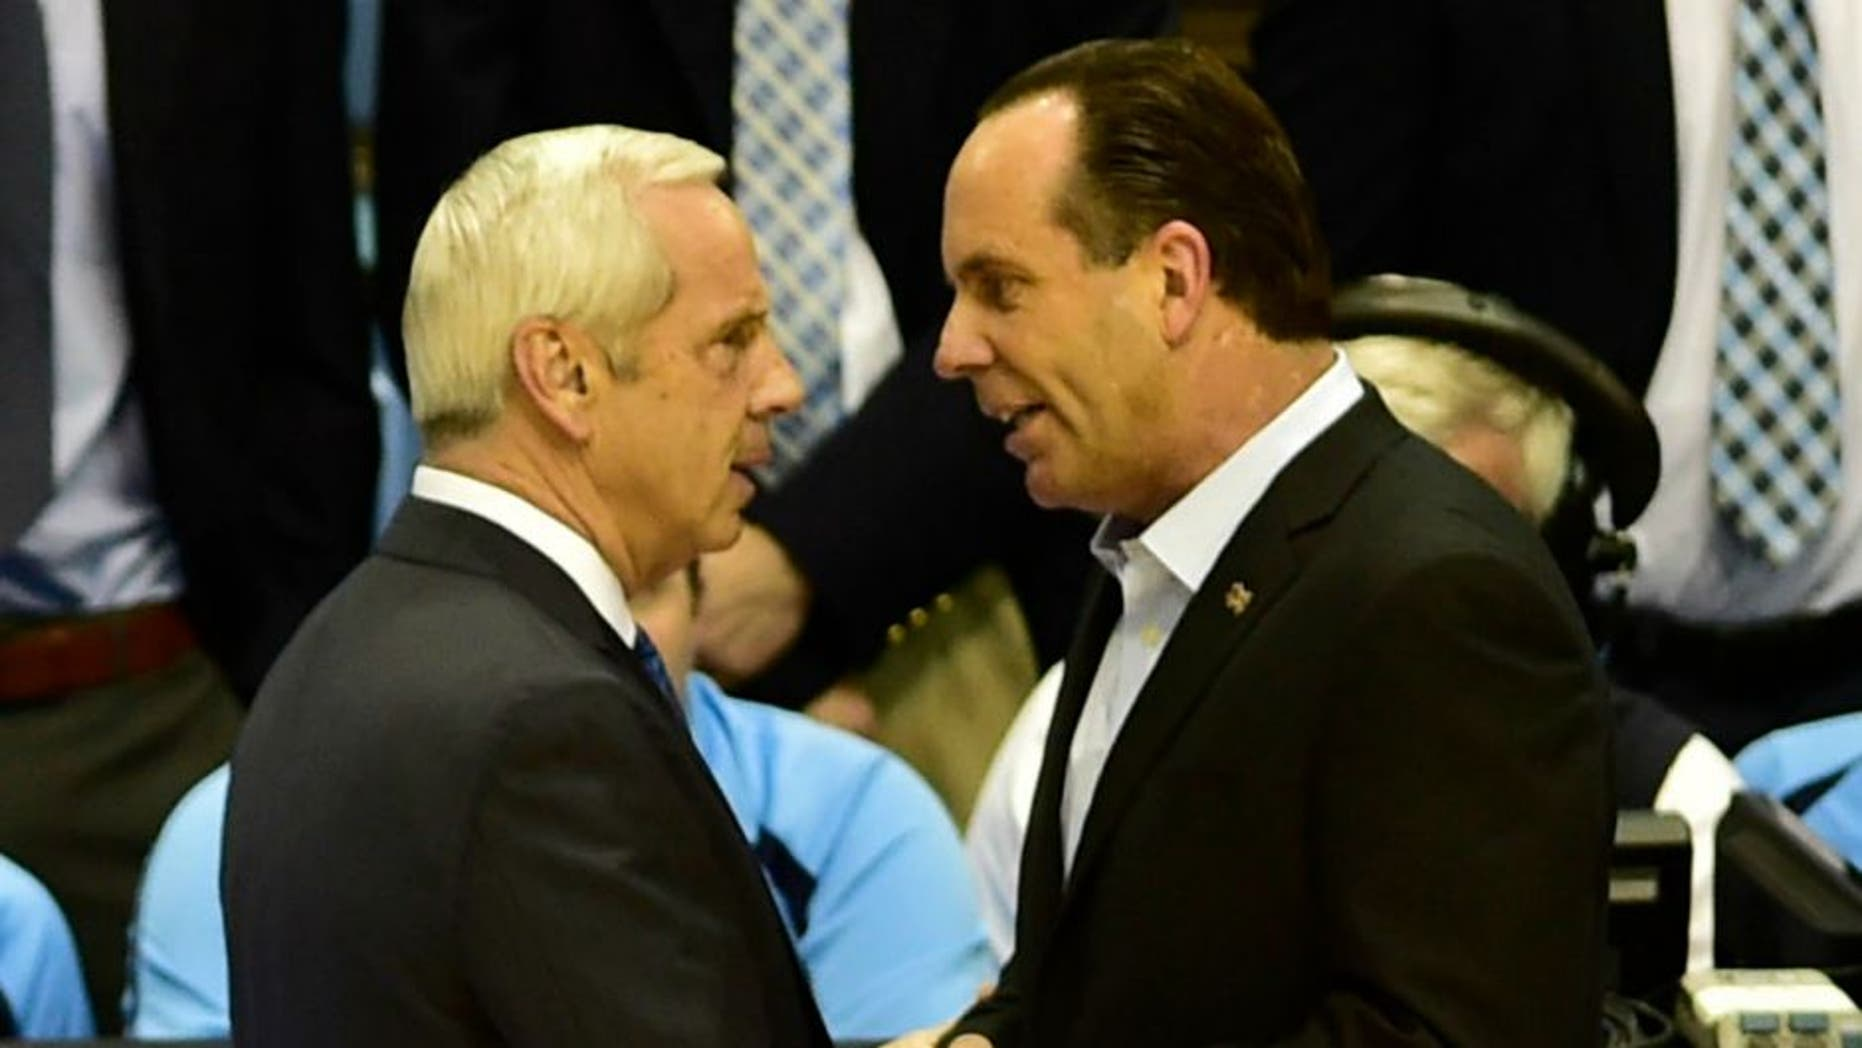 Jan 5, 2015; Chapel Hill, NC, USA; North Carolina Tar Heels head coach Roy Williams and Notre Dame Fighting Irish head coach Mike Brey greet each other before the game at Dean E. Smith Center. Mandatory Credit: Bob Donnan-USA TODAY Sports